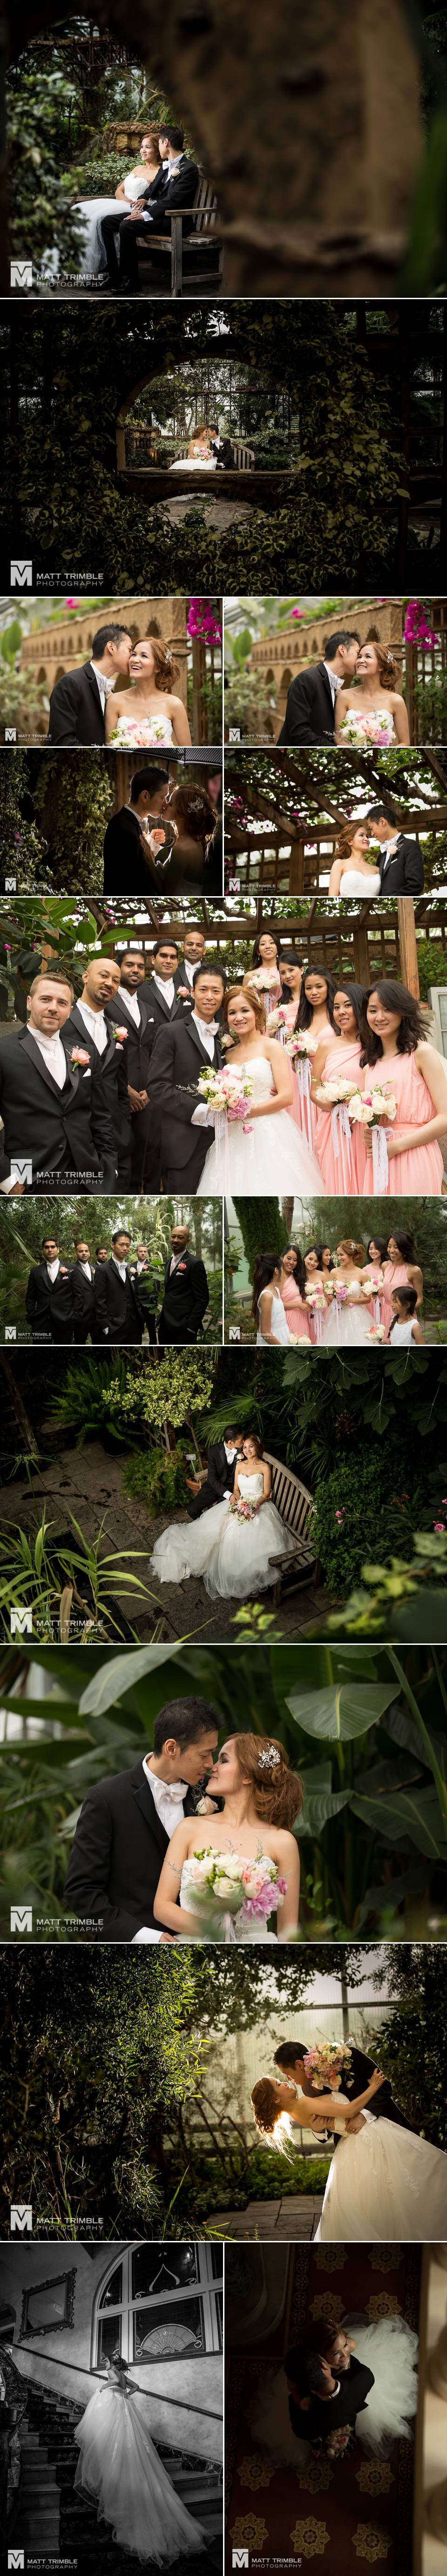 wedding photography at the Royal Botanical Gardens